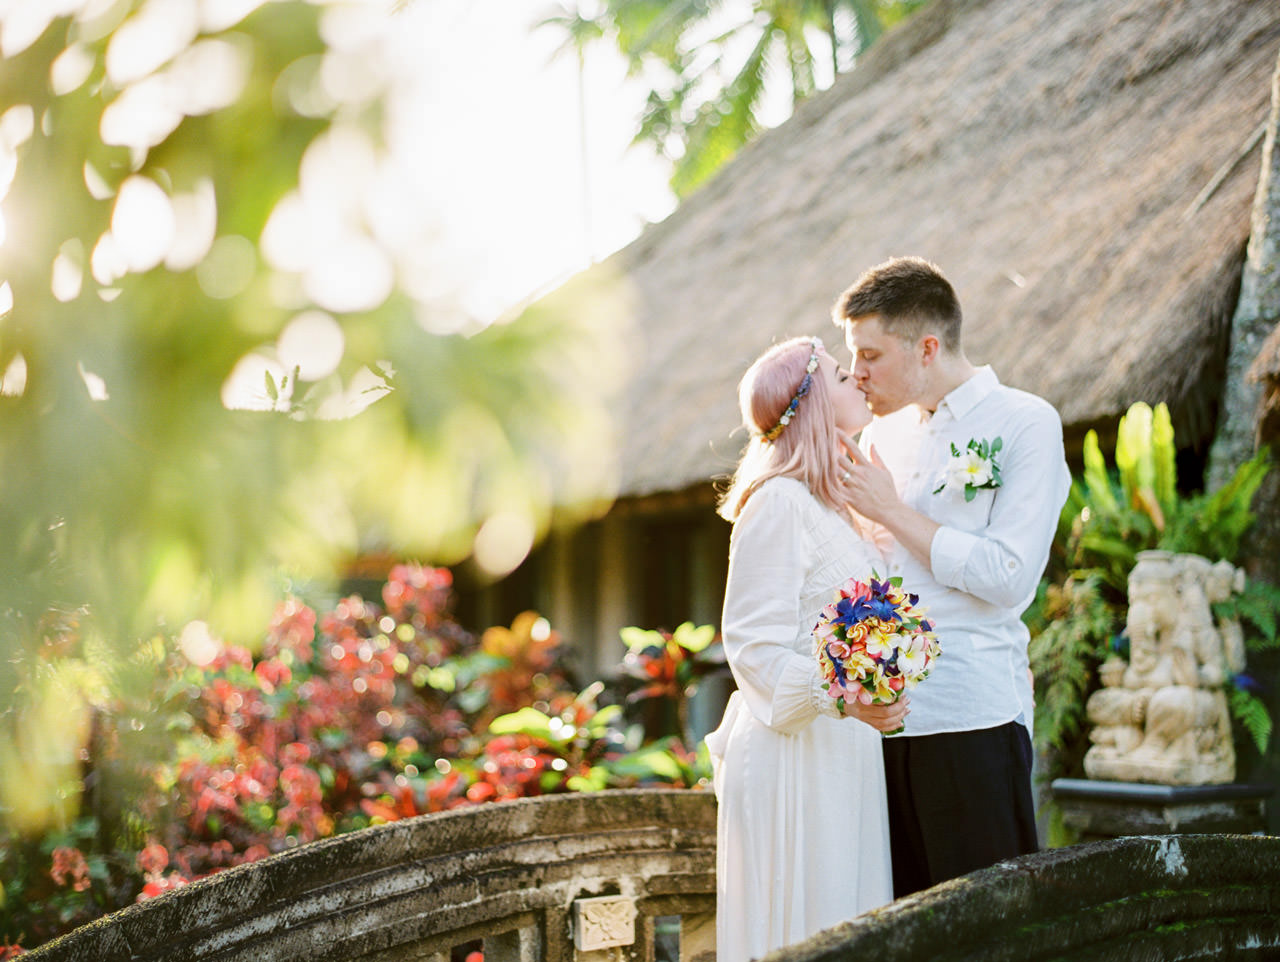 H & R: Viceroy Bali Elopement Photography 30